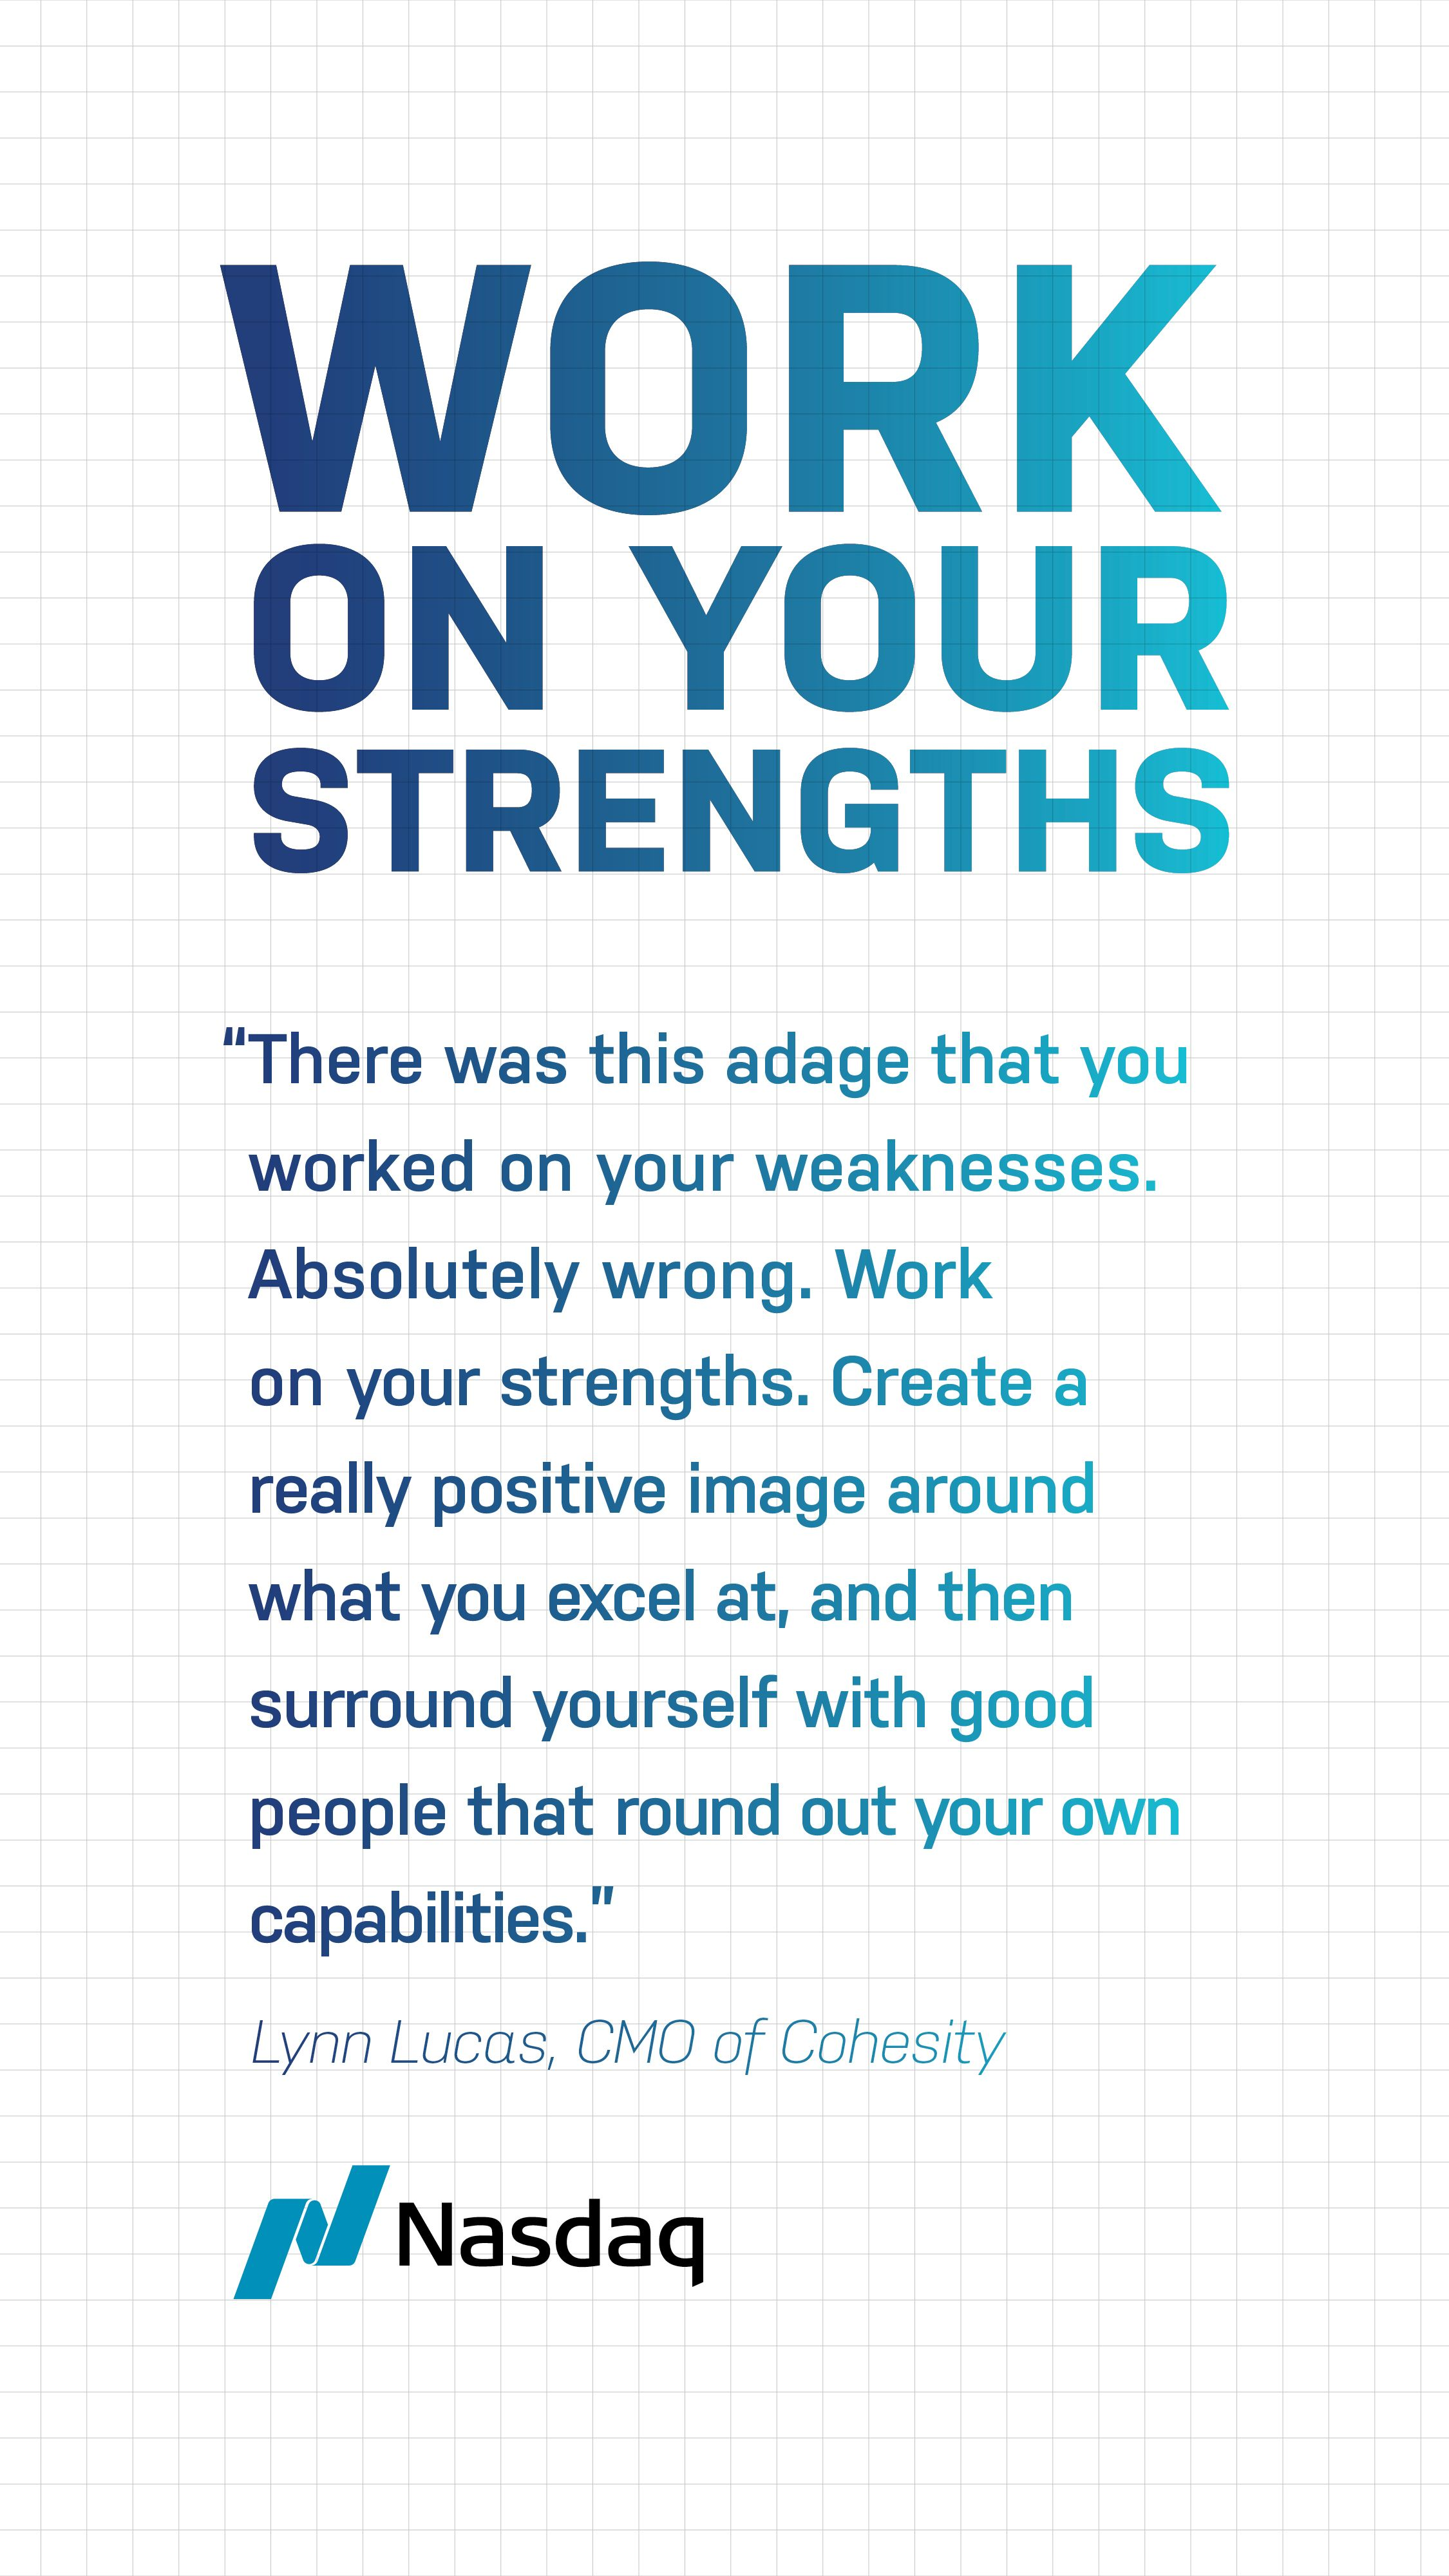 When I Entered The Industry There Was This Adage That You Worked On Your Weaknesses Absolutely Wrong Work On Your Strengt Life Quotes Words Positive Quotes